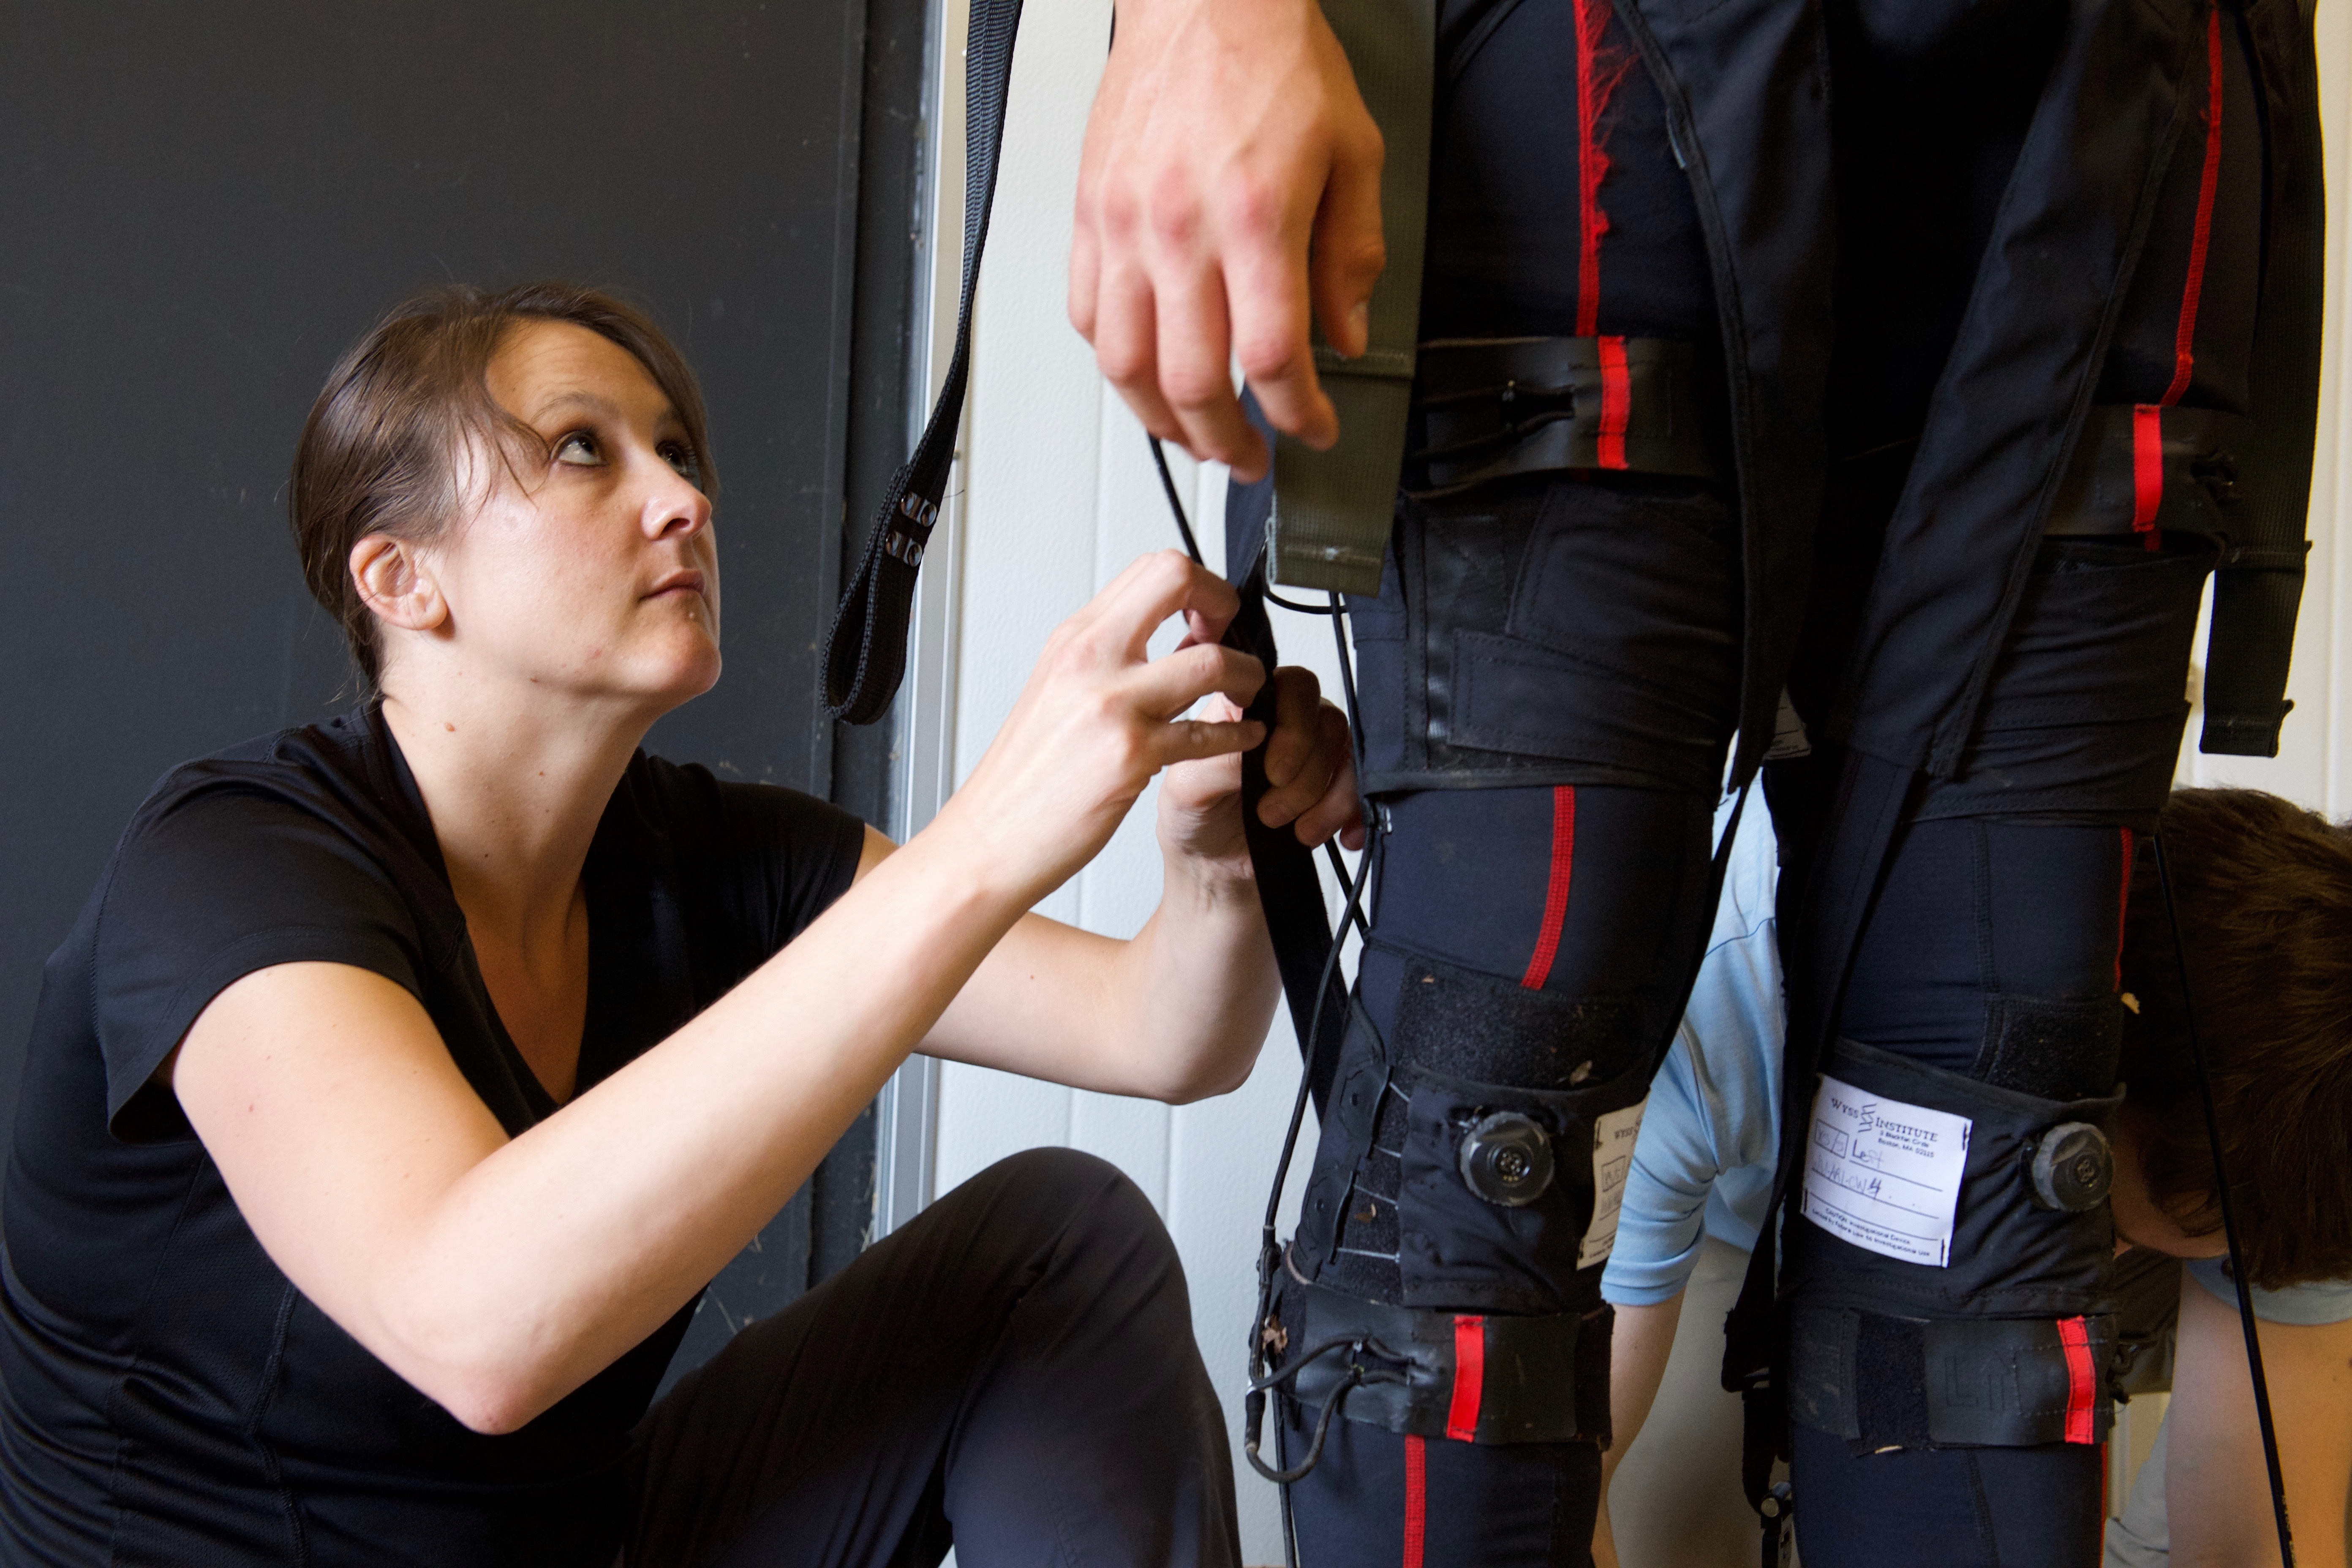 Dr. Courtney Webster makes adjustments to the Warrior Web physical augmentation suit from Harvard's Wyss Institute in Boston, Massachusetts. The project is one of many funded by DARPA, and is an example of a technology that could have both military and civil purposes. (David McNally/U.S. Army)